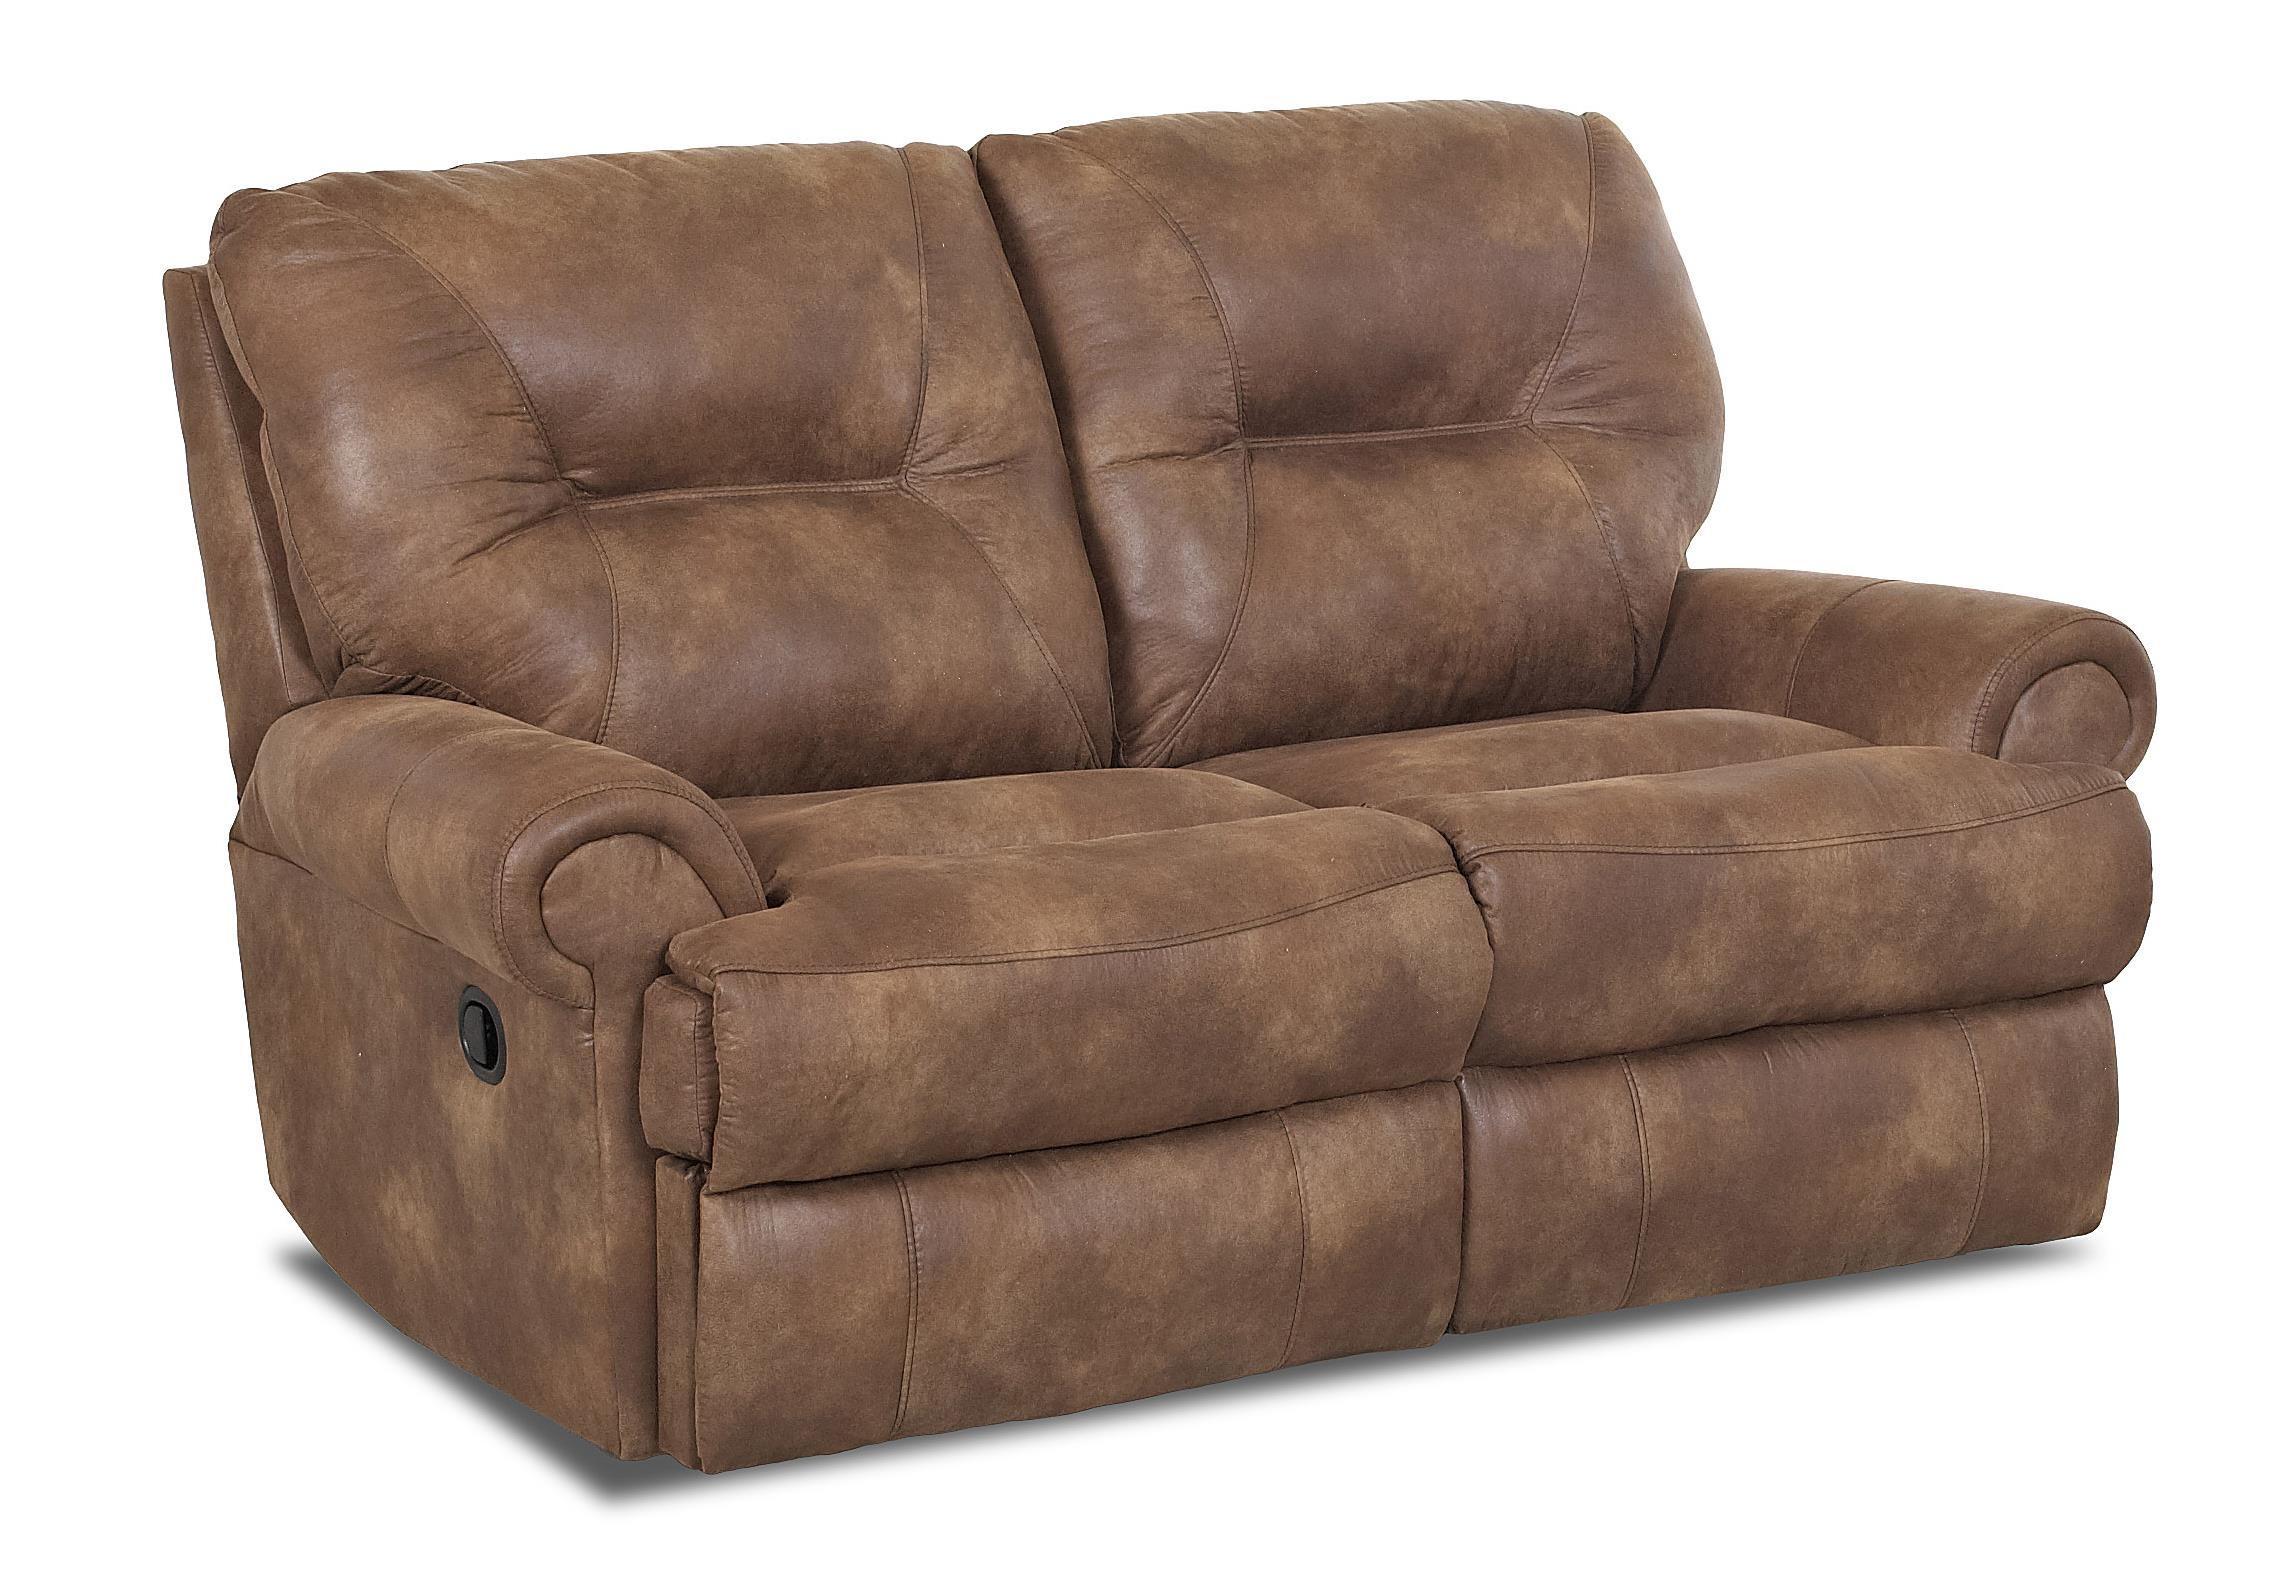 Traditional Reclining Loveseat By Klaussner Wolf And Gardiner Wolf Furniture